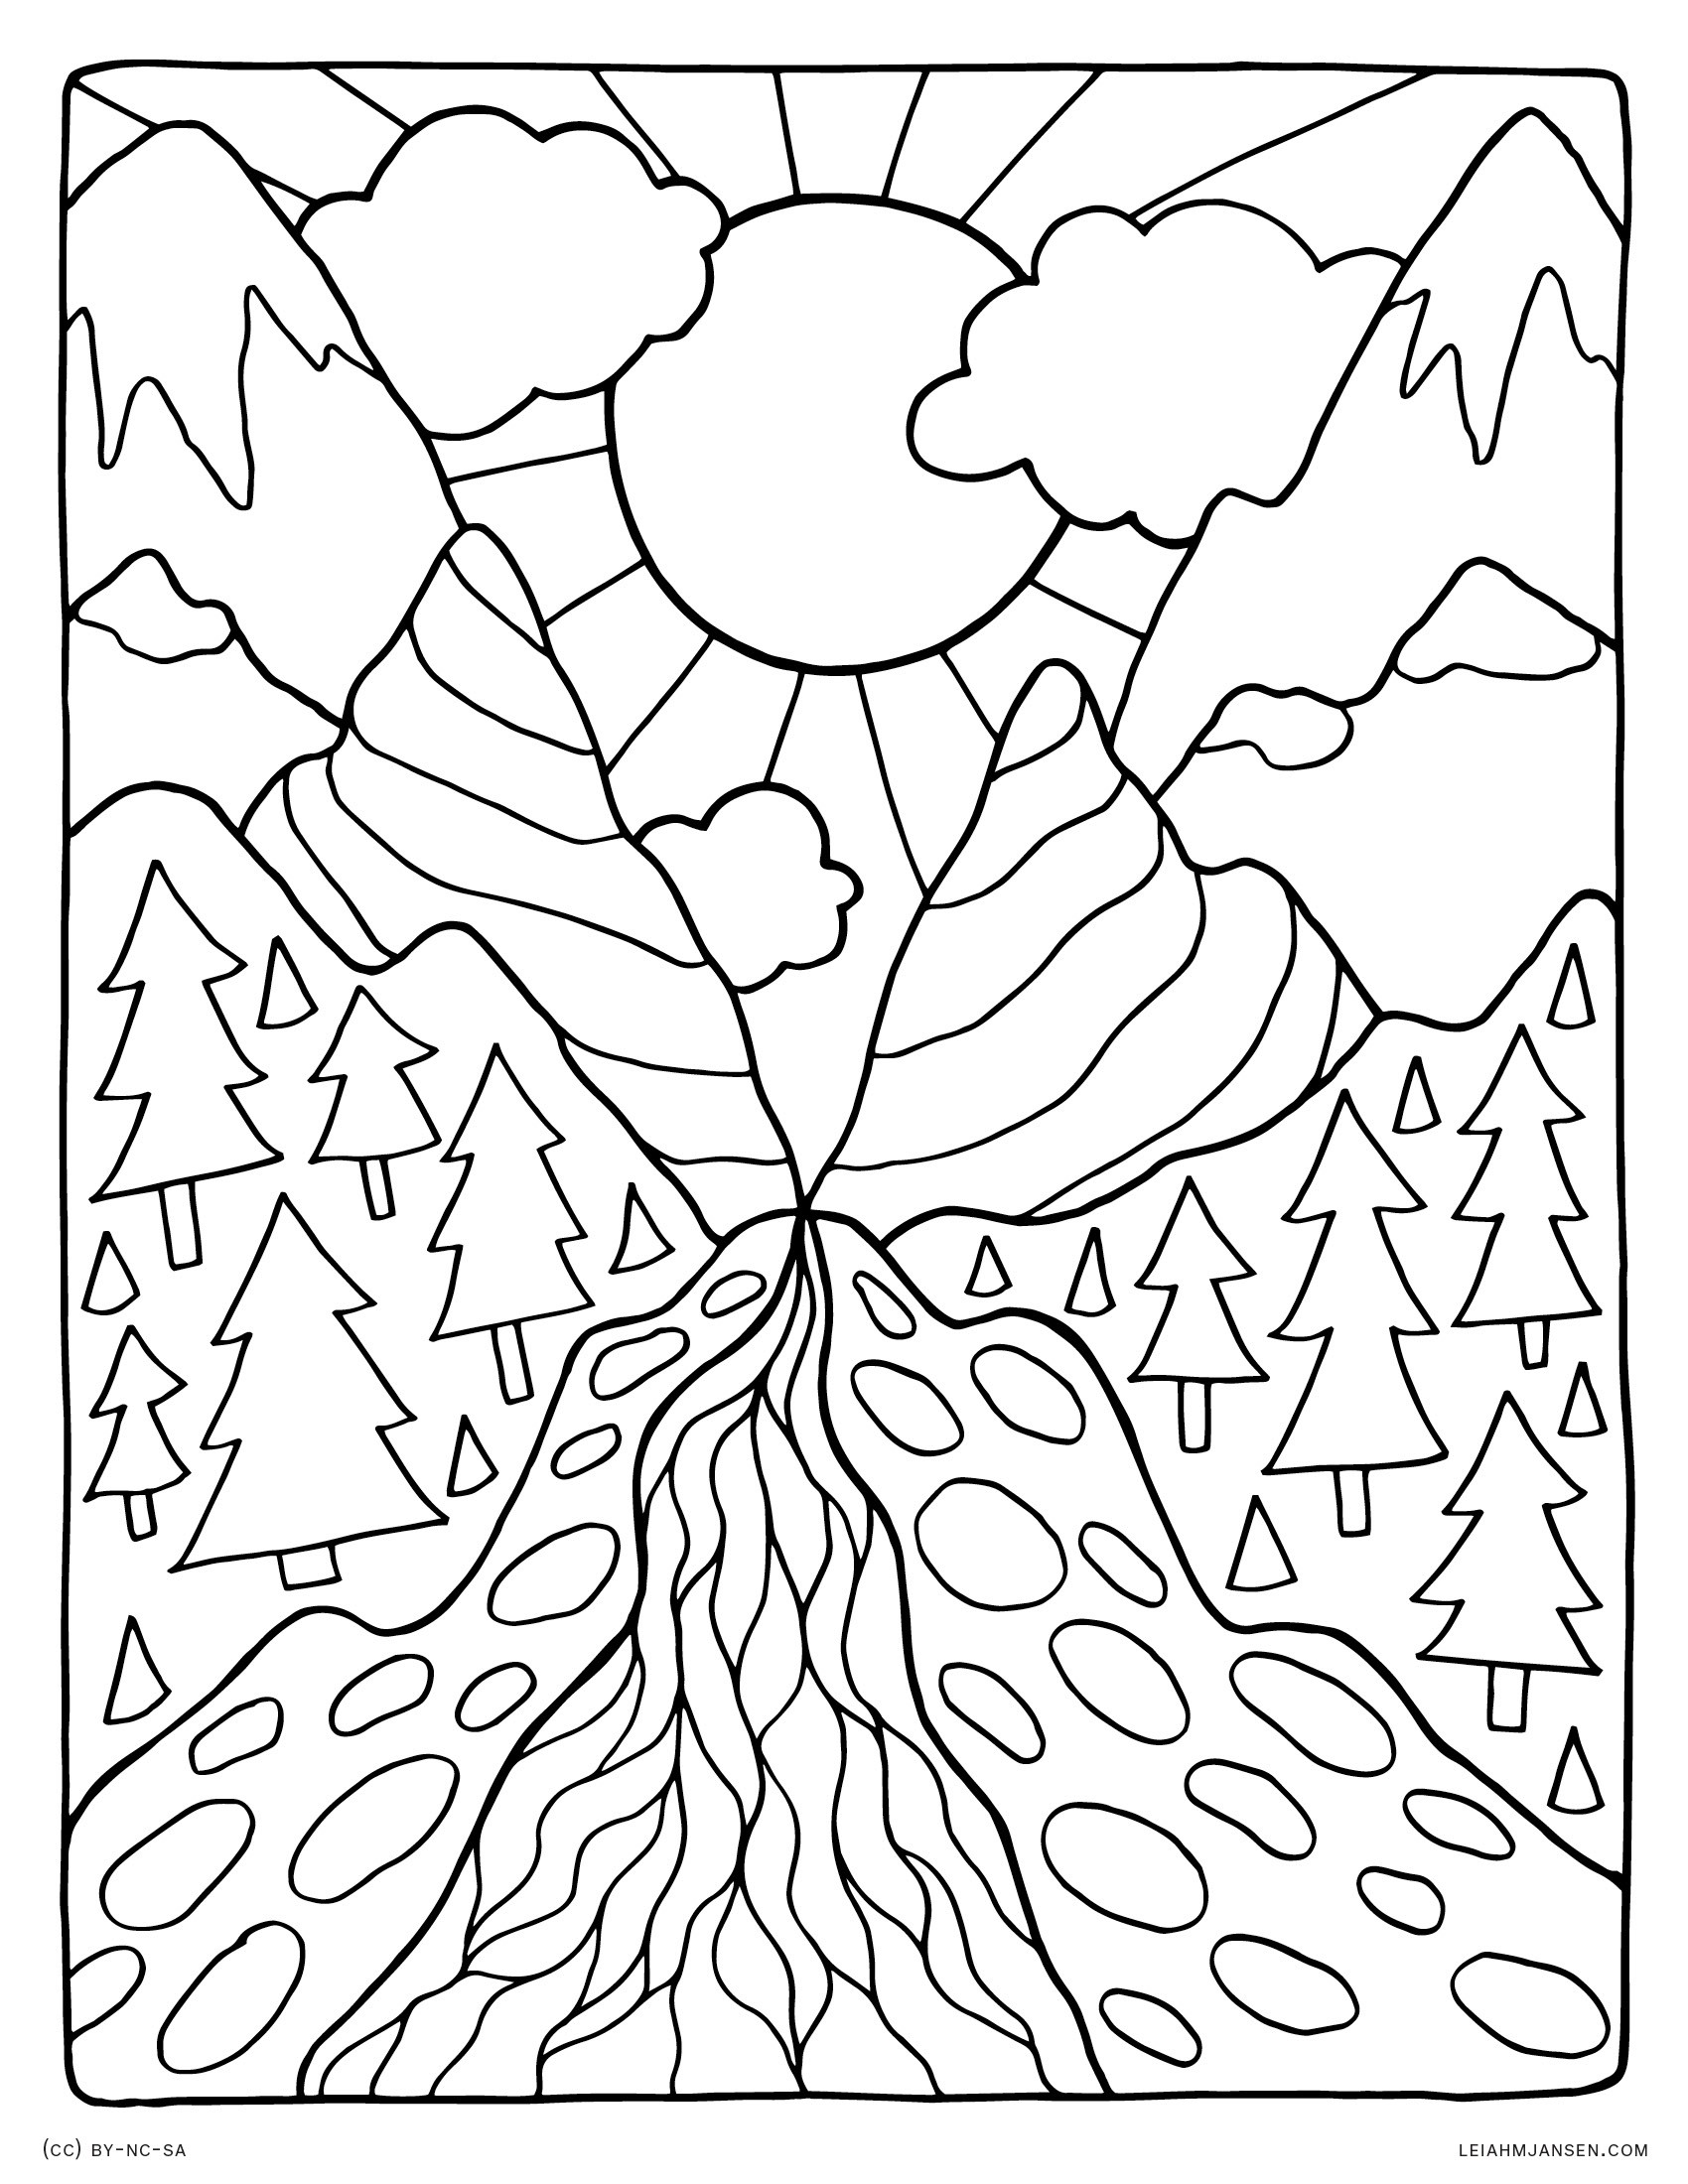 Nature Scene Drawing At Getdrawings